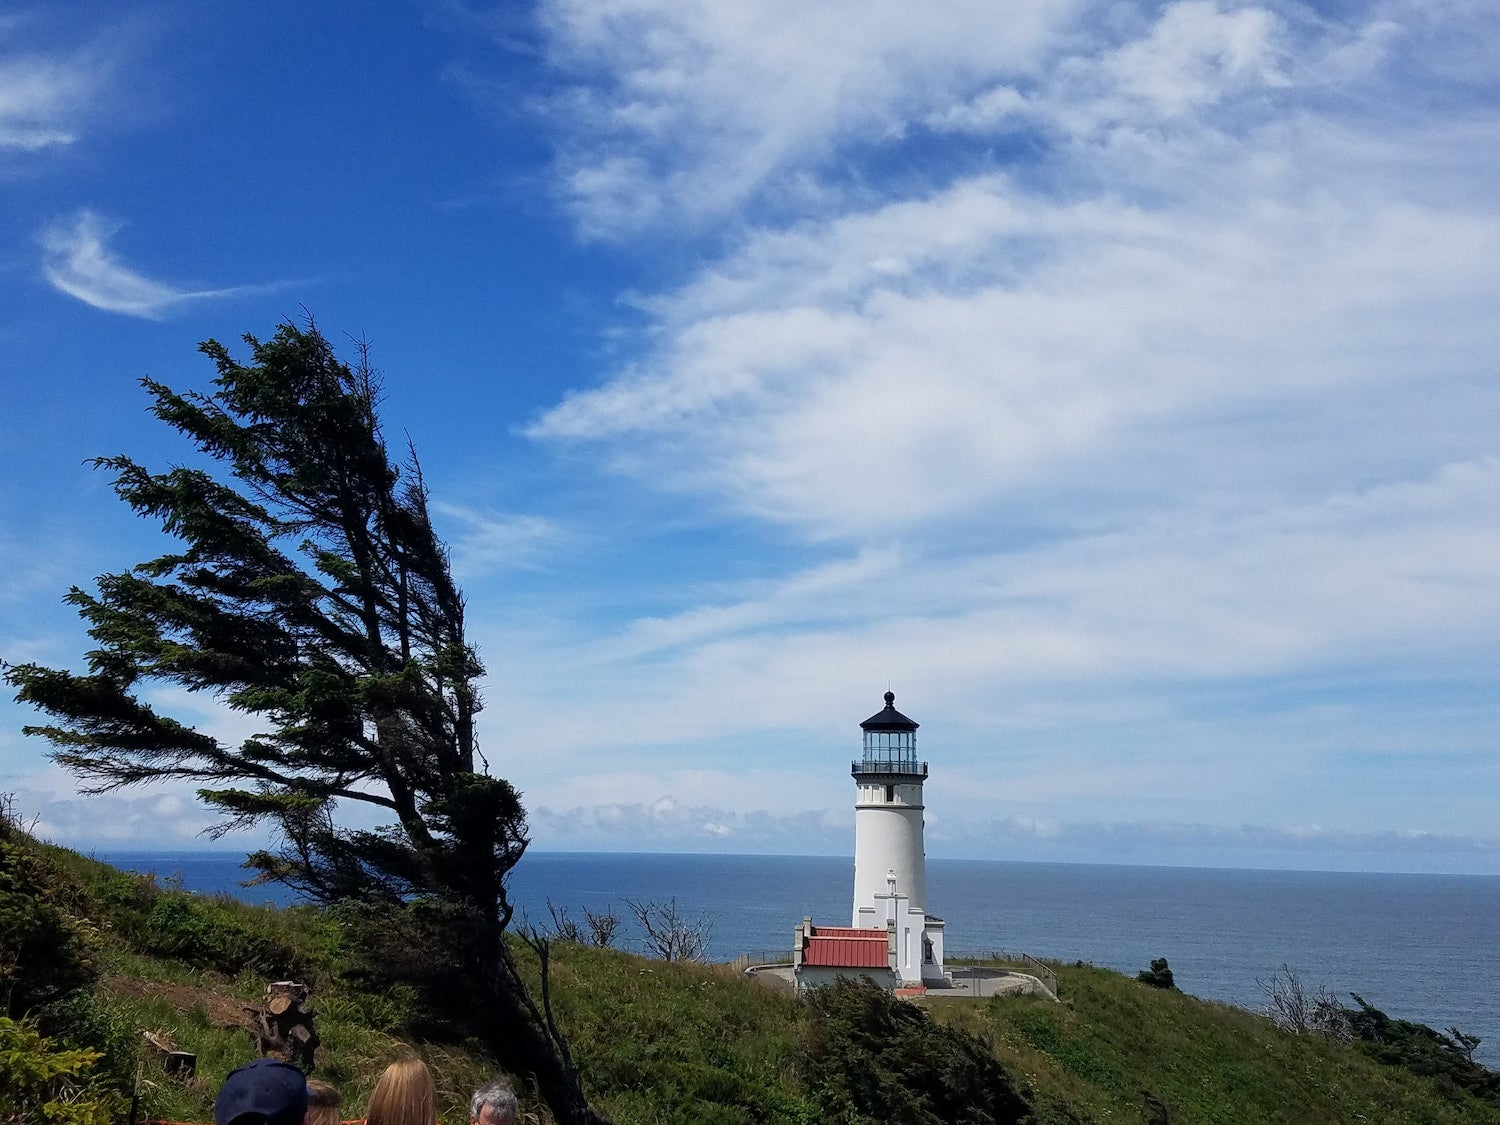 lighthouse and tree on ocean